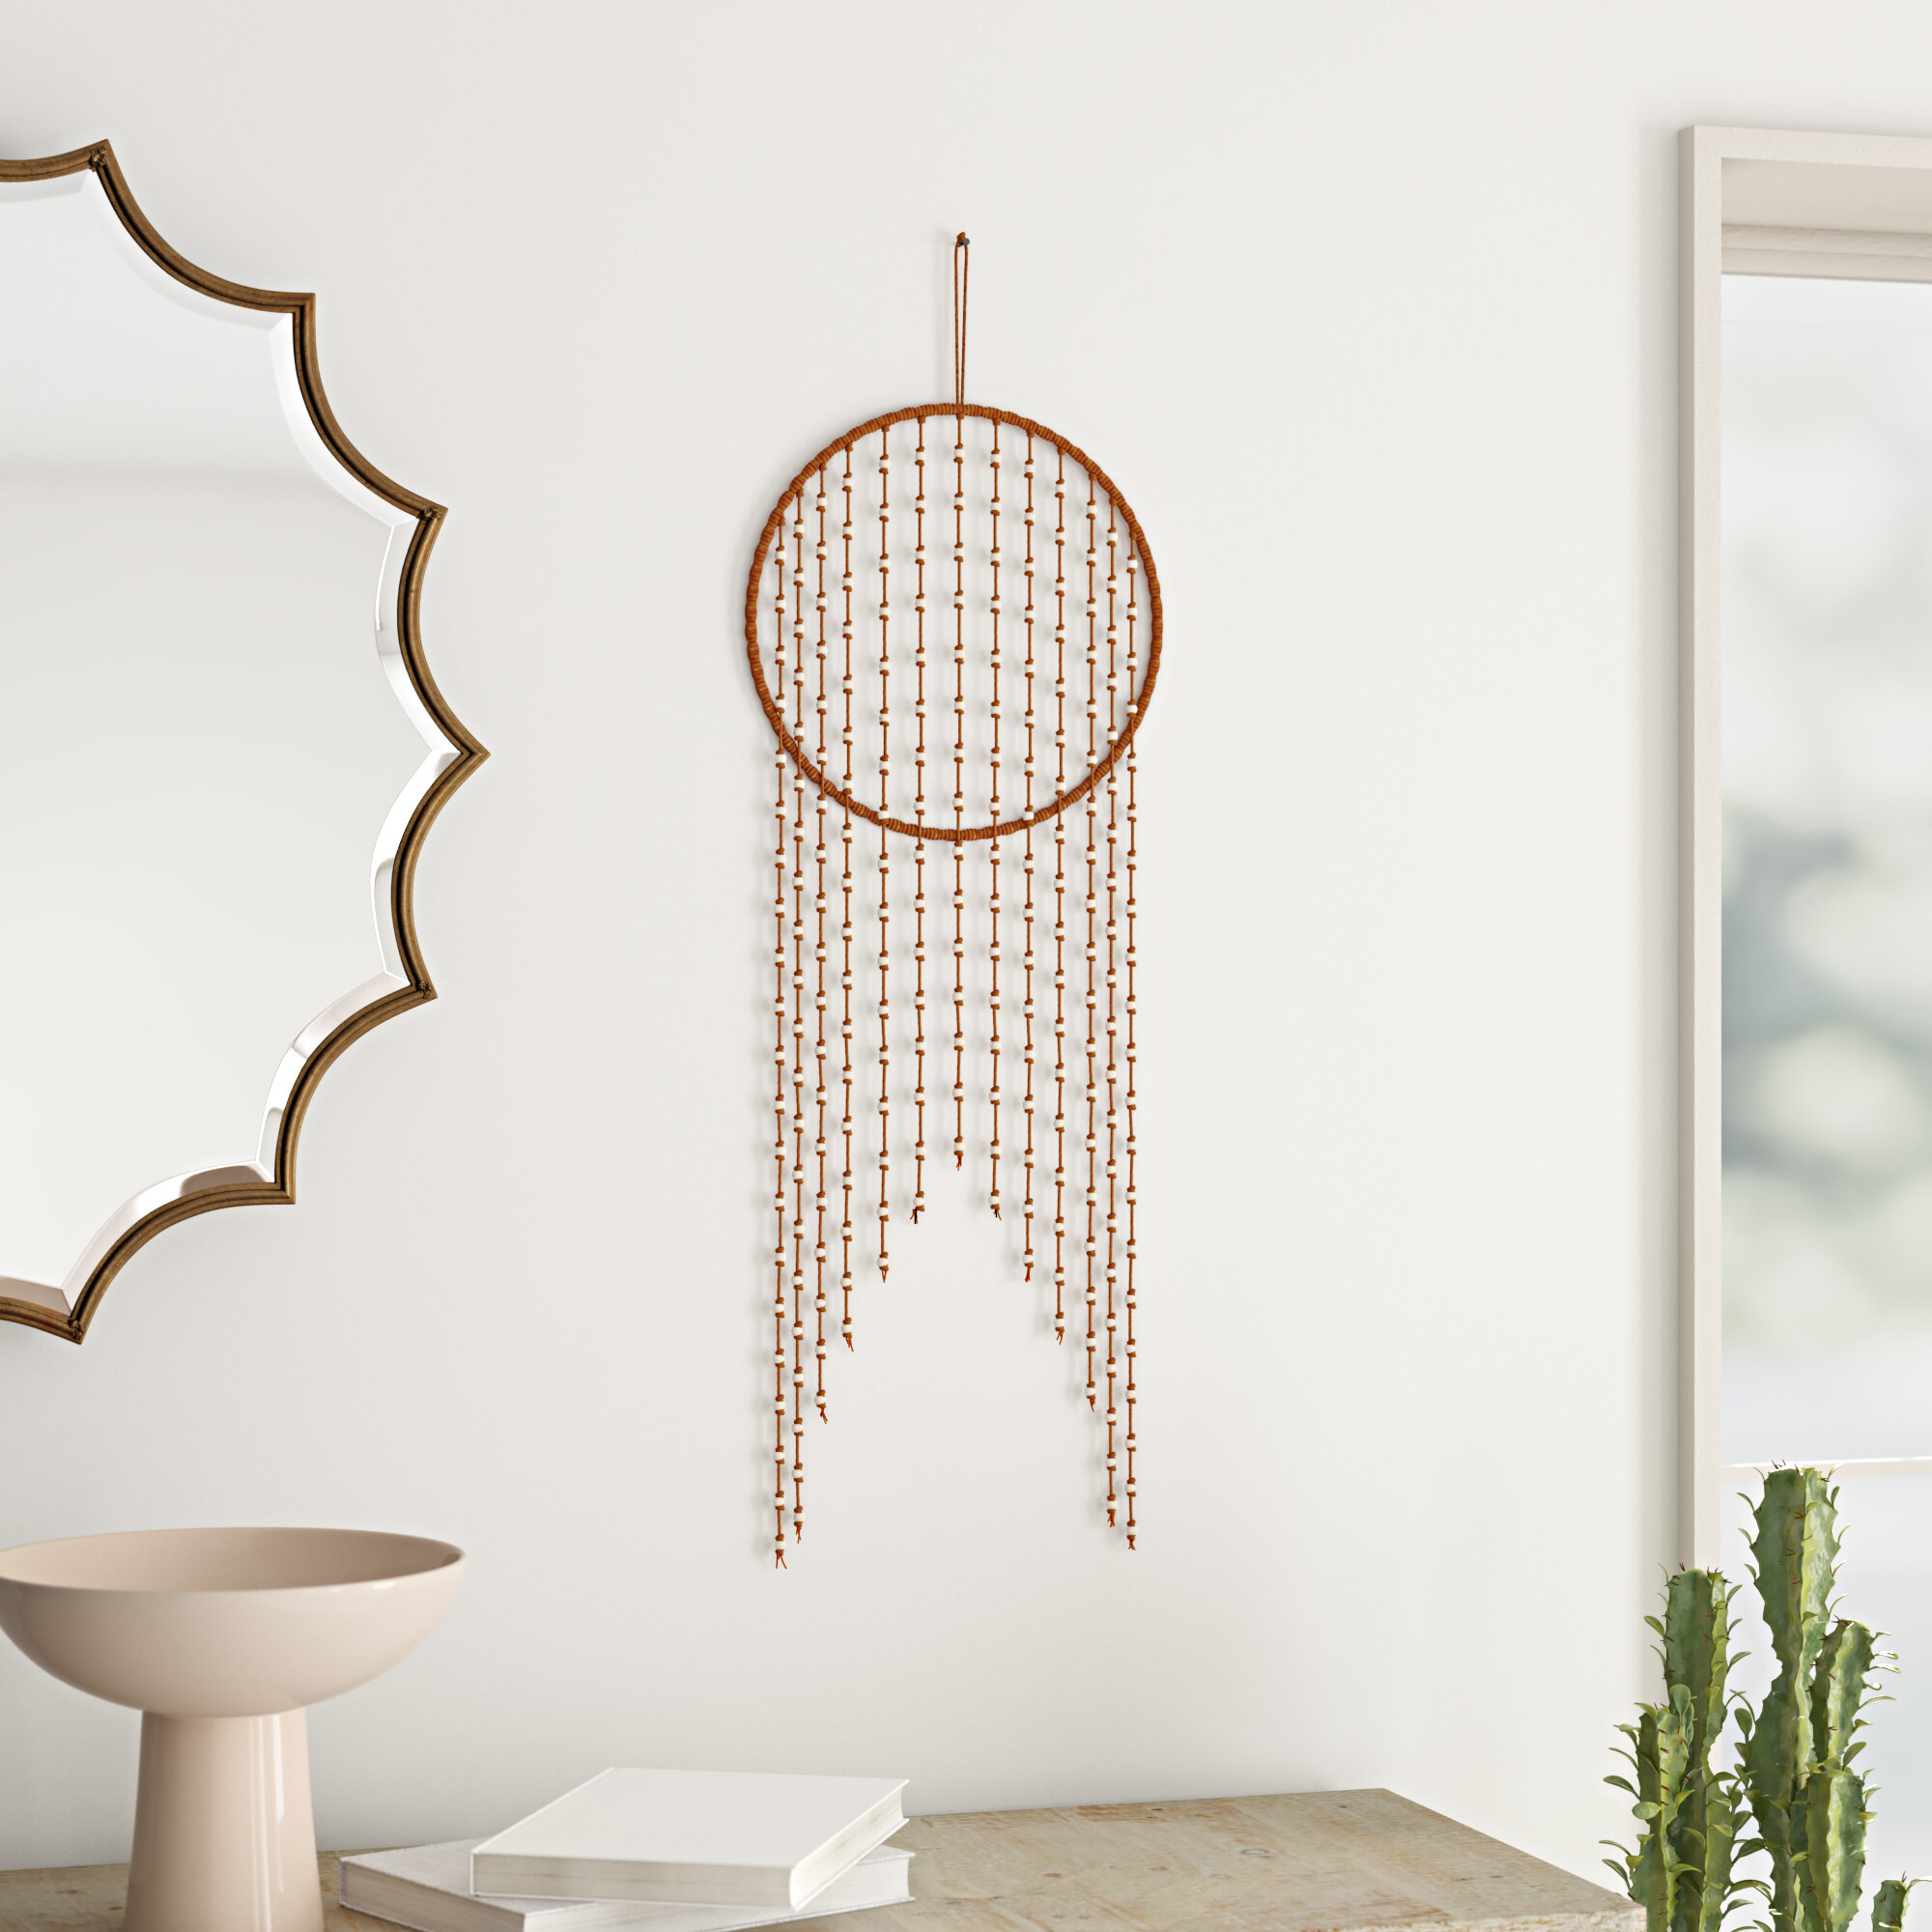 Wayfair | Wall Hanging Tapestries You'll Love In 2021 Pertaining To Newest Blended Fabric Italian Wall Hangings (View 13 of 20)